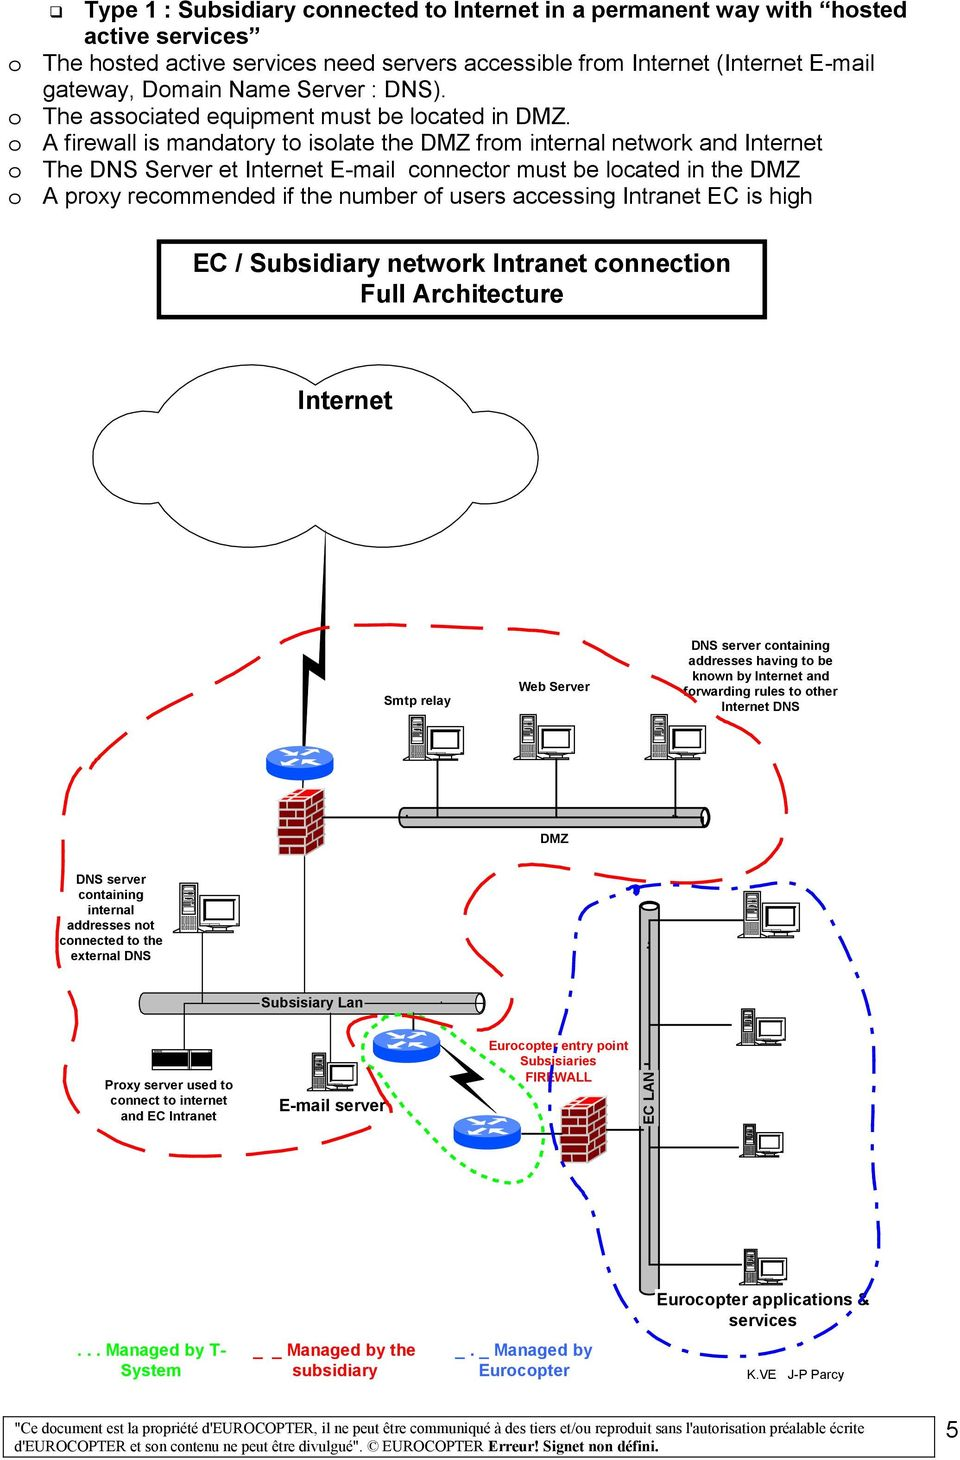 o A firewall is mandatory to isolate the DMZ from internal network and Internet o The DNS Server et Internet E-mail connector must be located in the DMZ o A proxy recommended if the number of users